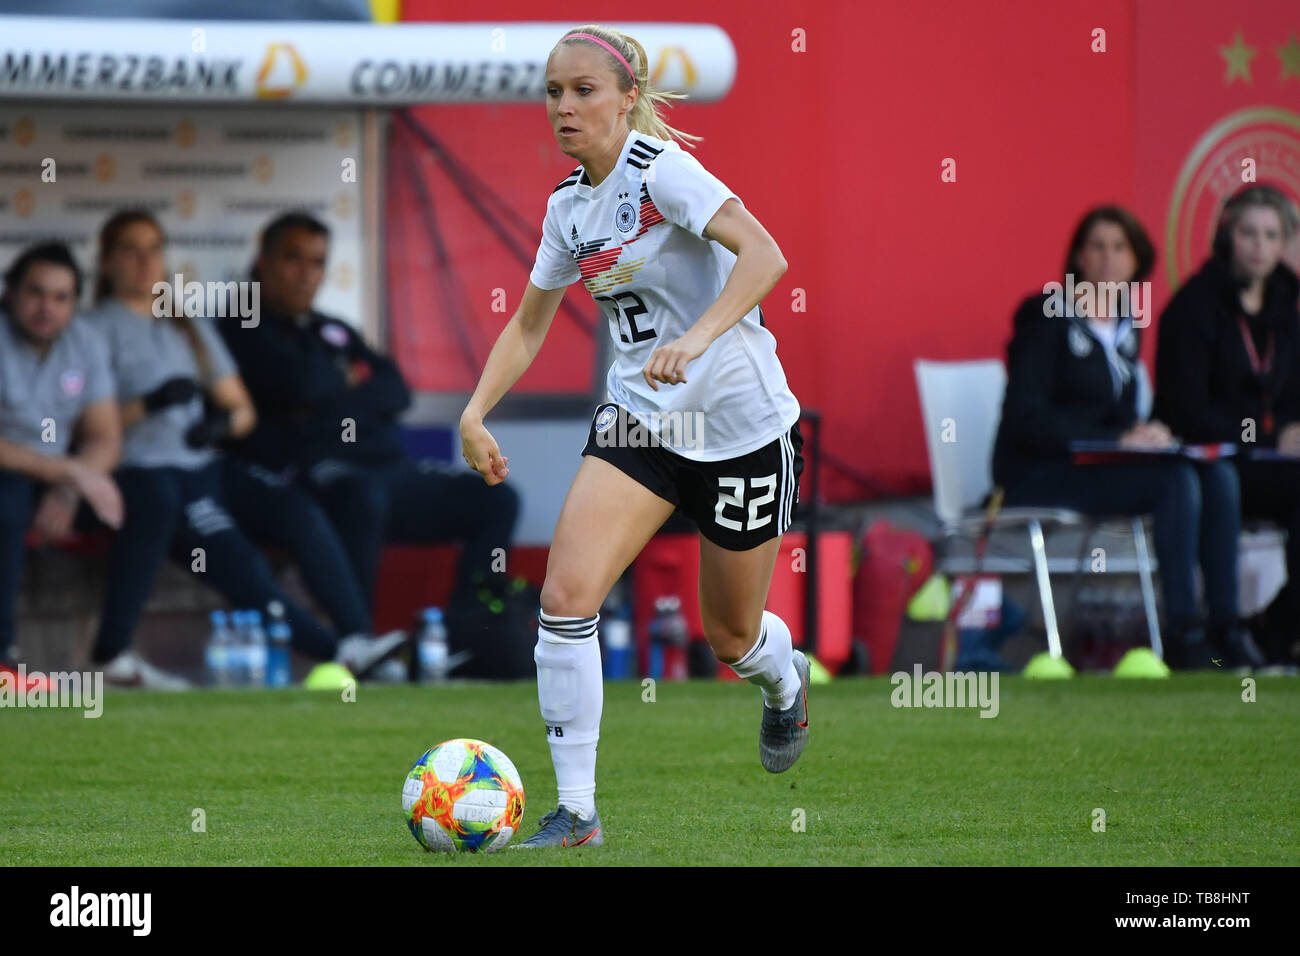 Regensburg, Deutschland. 30th May, 2019. Turid KNAAK (GER), Action, Single Action, Frame, Cut Out, Full Body, Whole Figure. Football, Women Laender match: Germany - Chile 2-0, on 30.05.2019 Continental Arena Regensburg. | usage worldwide Credit: dpa/Alamy Live News - Stock Image